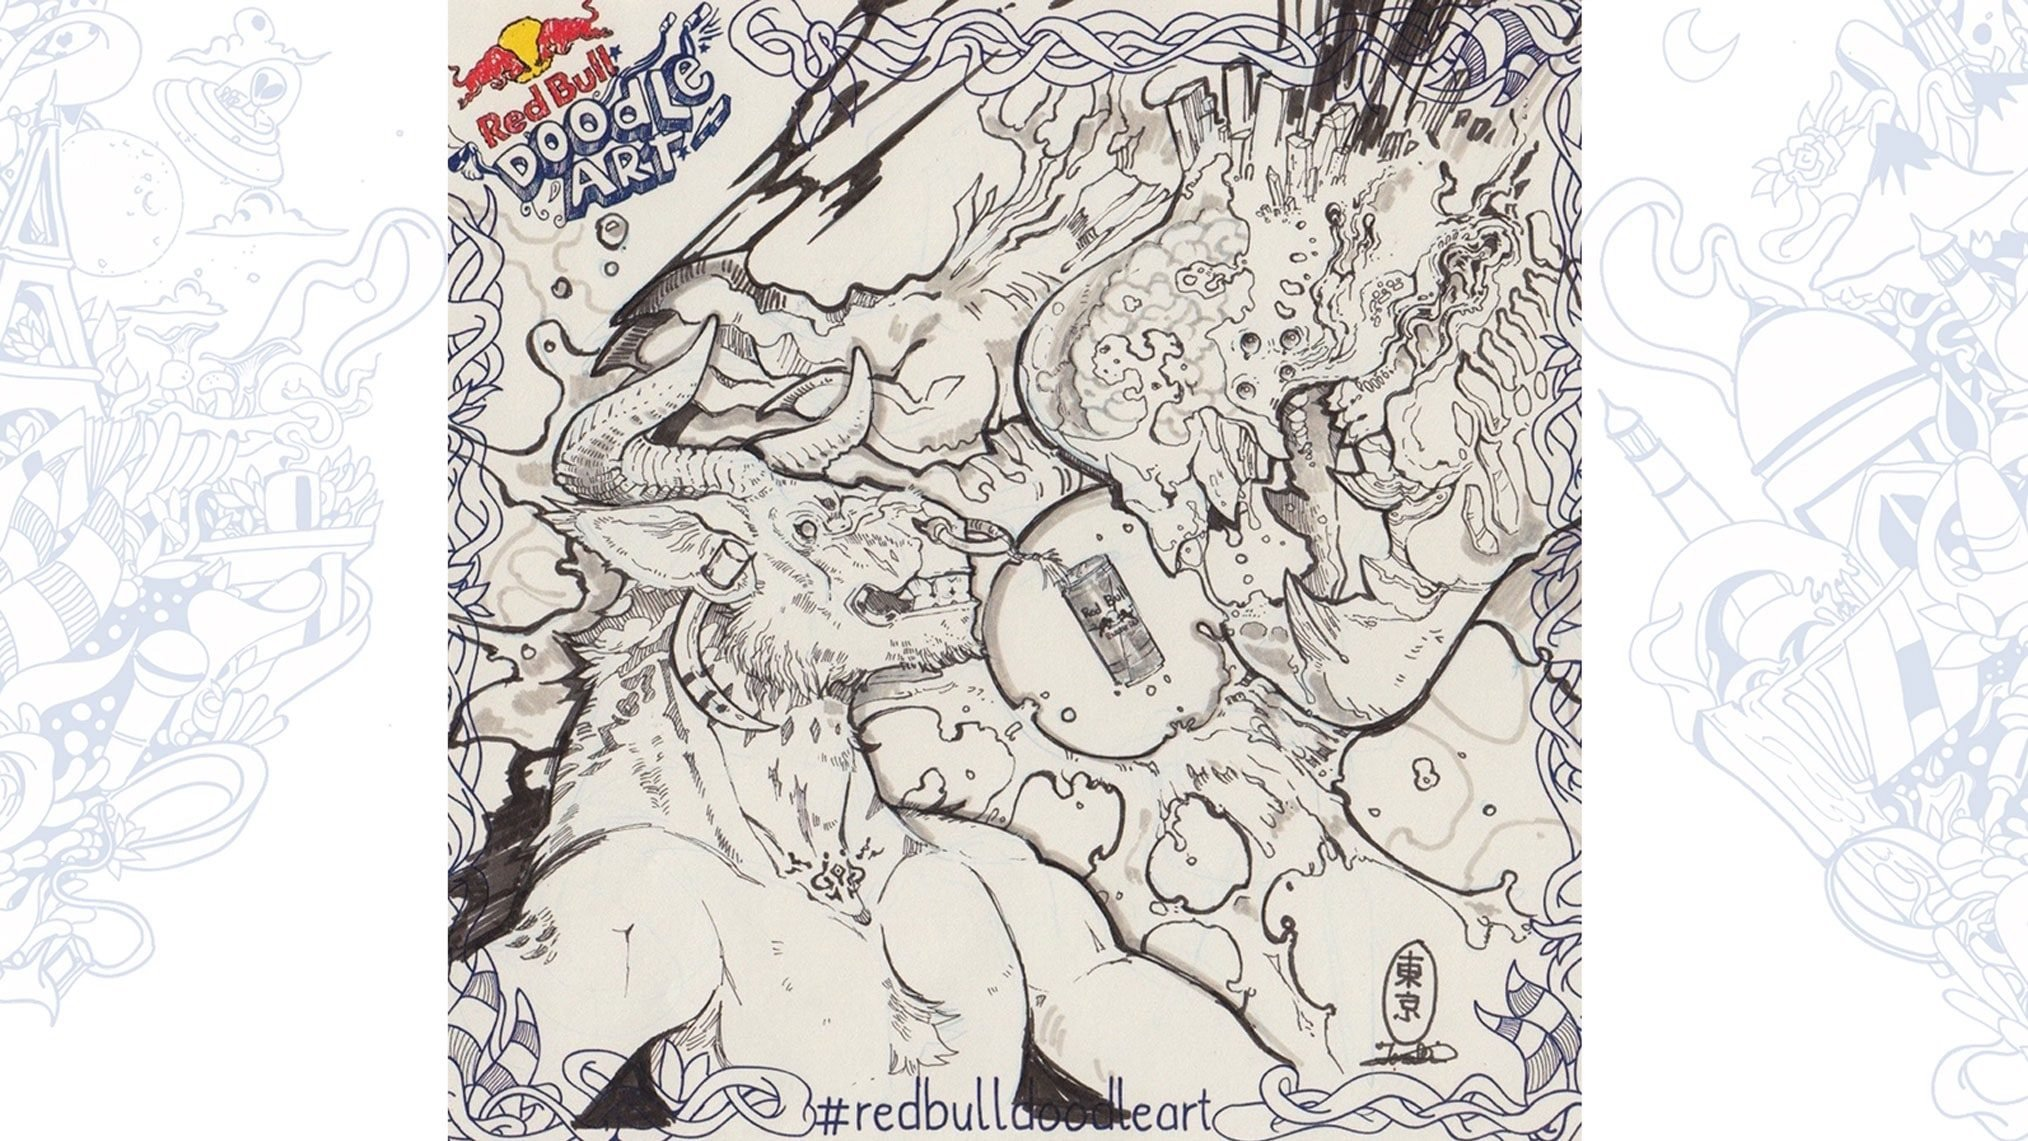 Full Sail Student Selected as Finalist in Red Bull Doodle Art Competition - Hero image